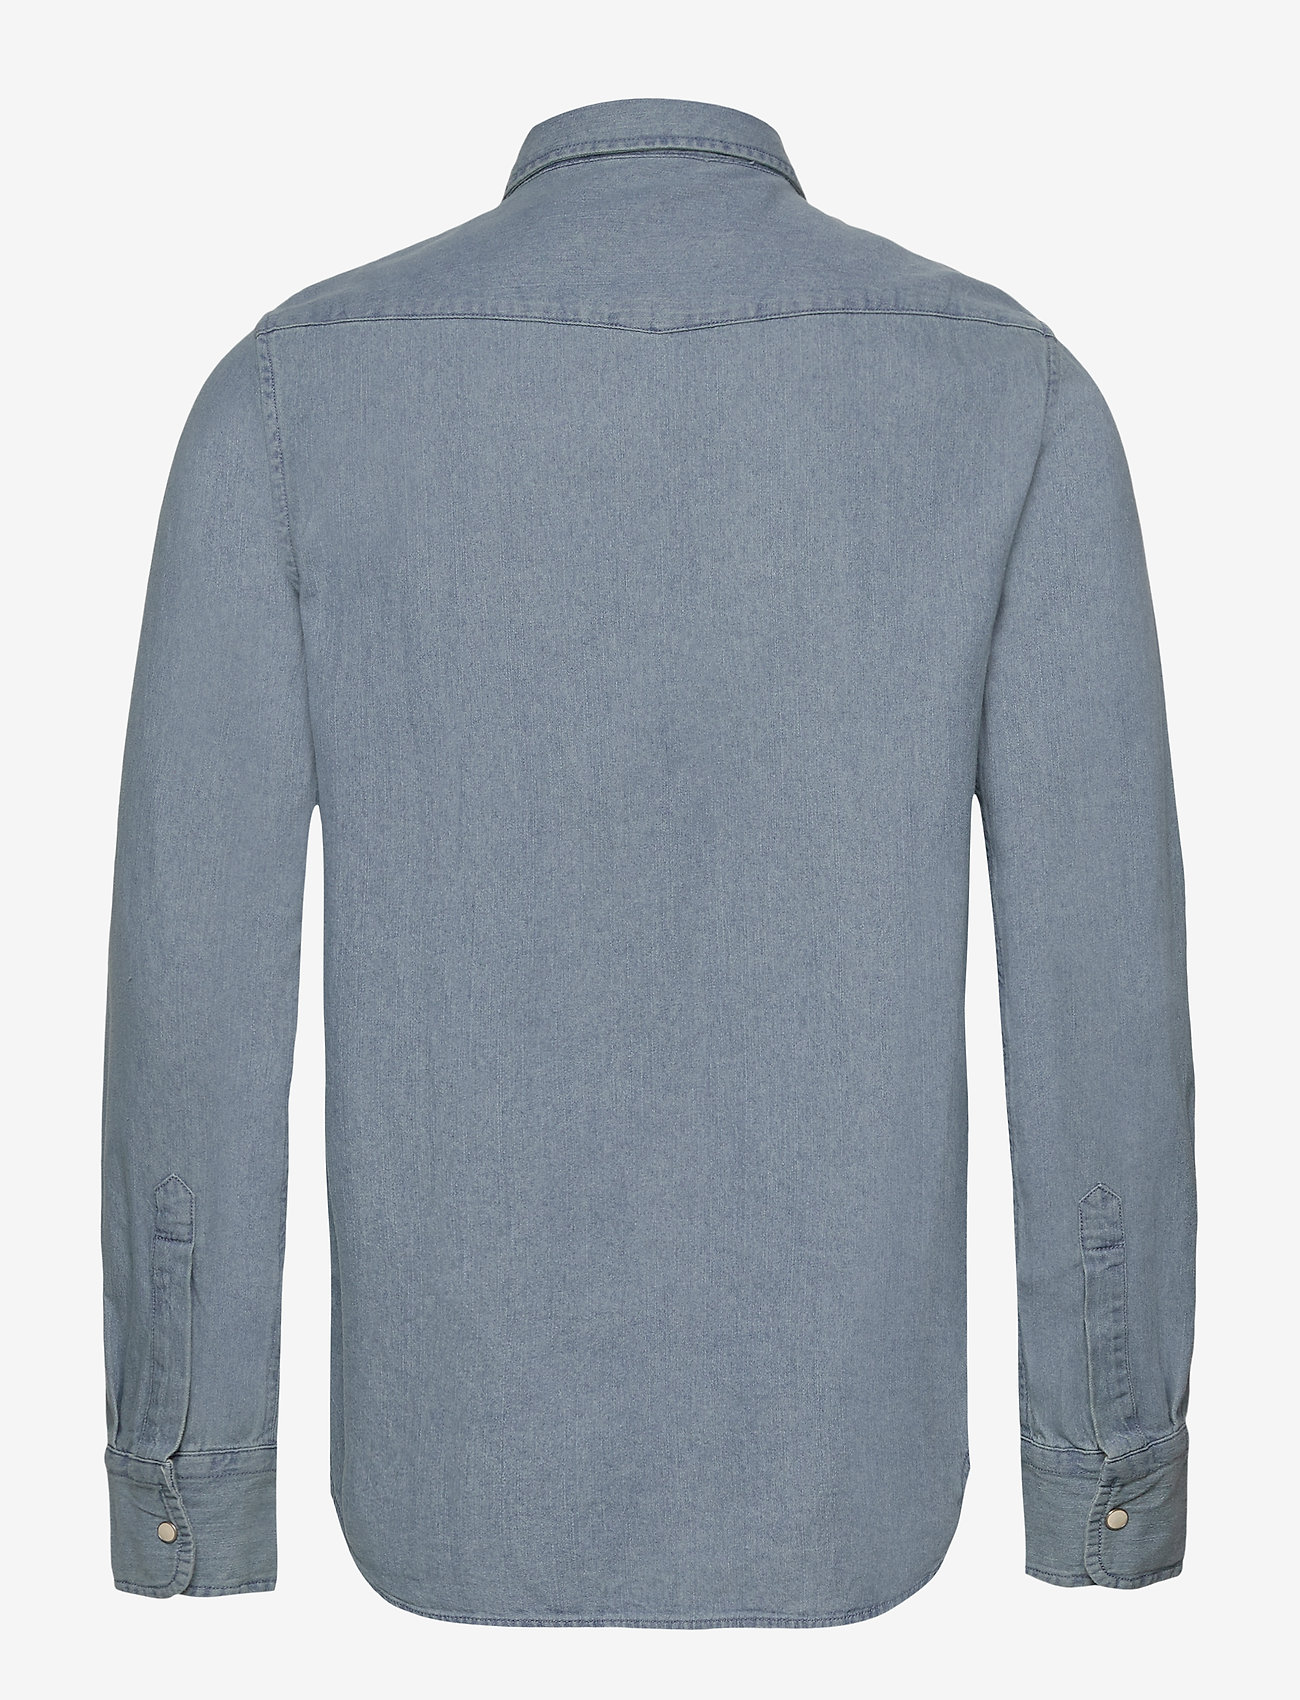 Resurrection L/s Shirt (Mid Blue Wash) (489.30 kr) - Superdry